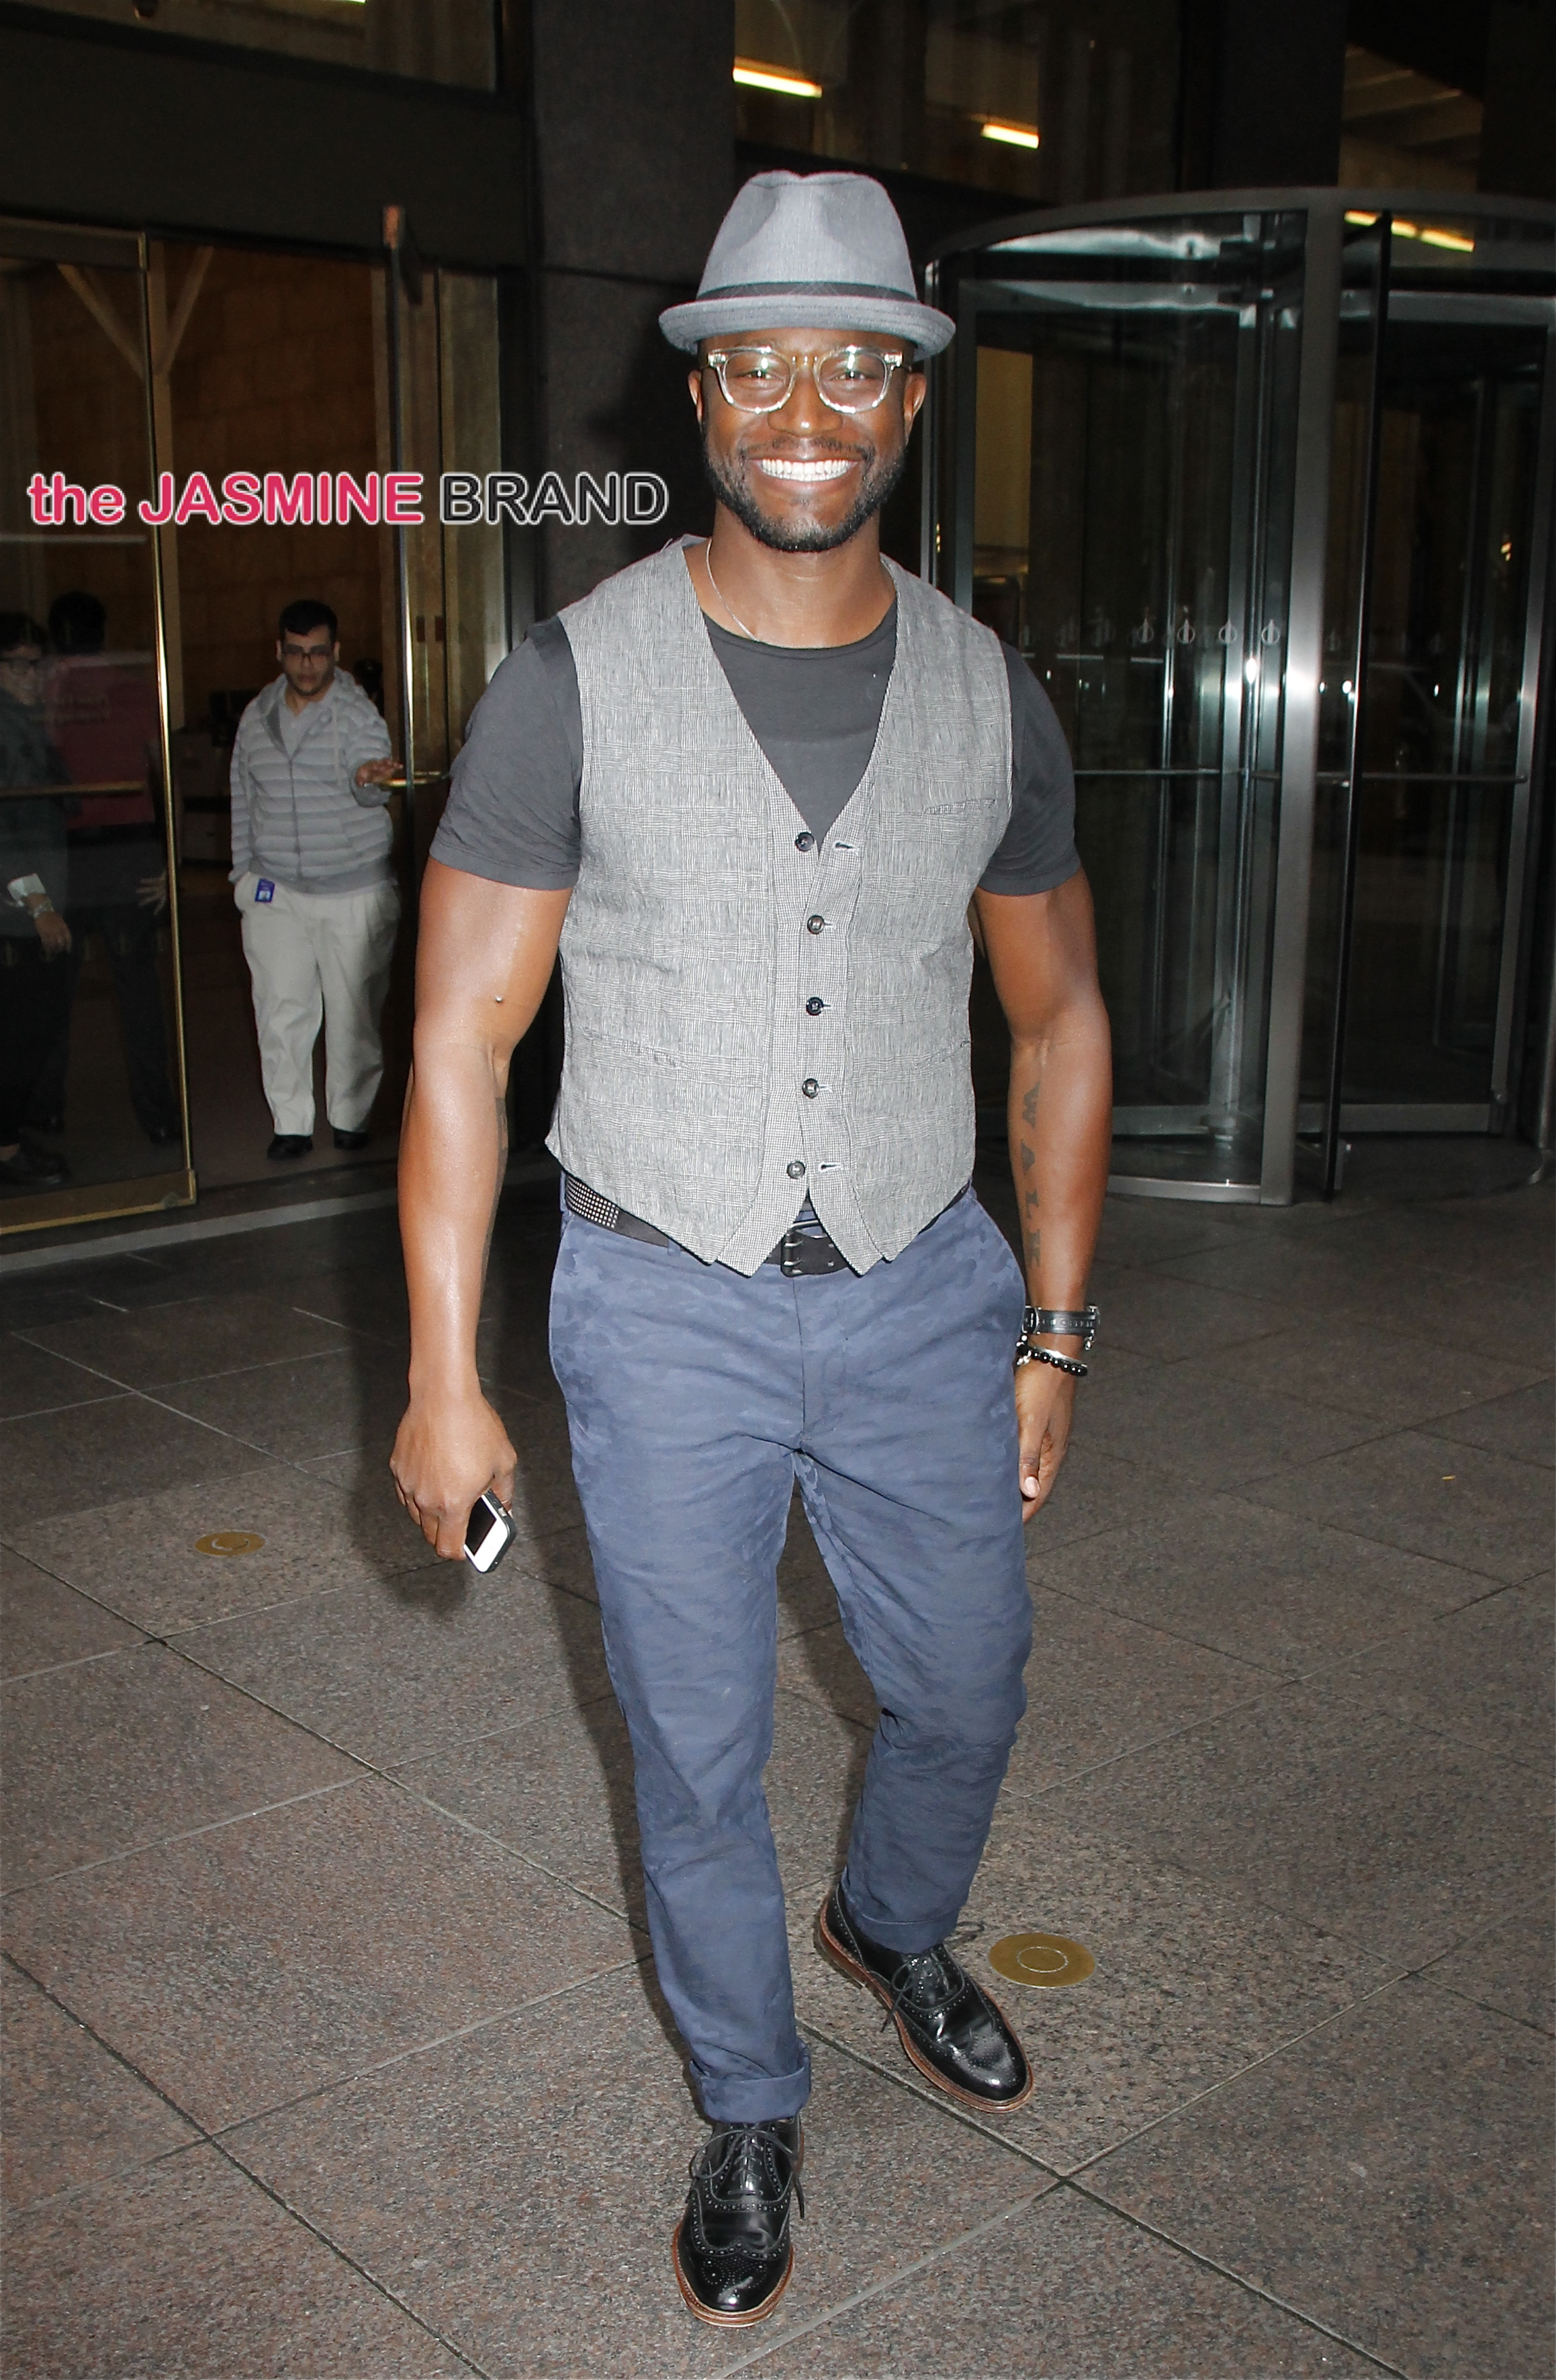 Actor Taye Diggs leaves Sirius XM studios in NYC